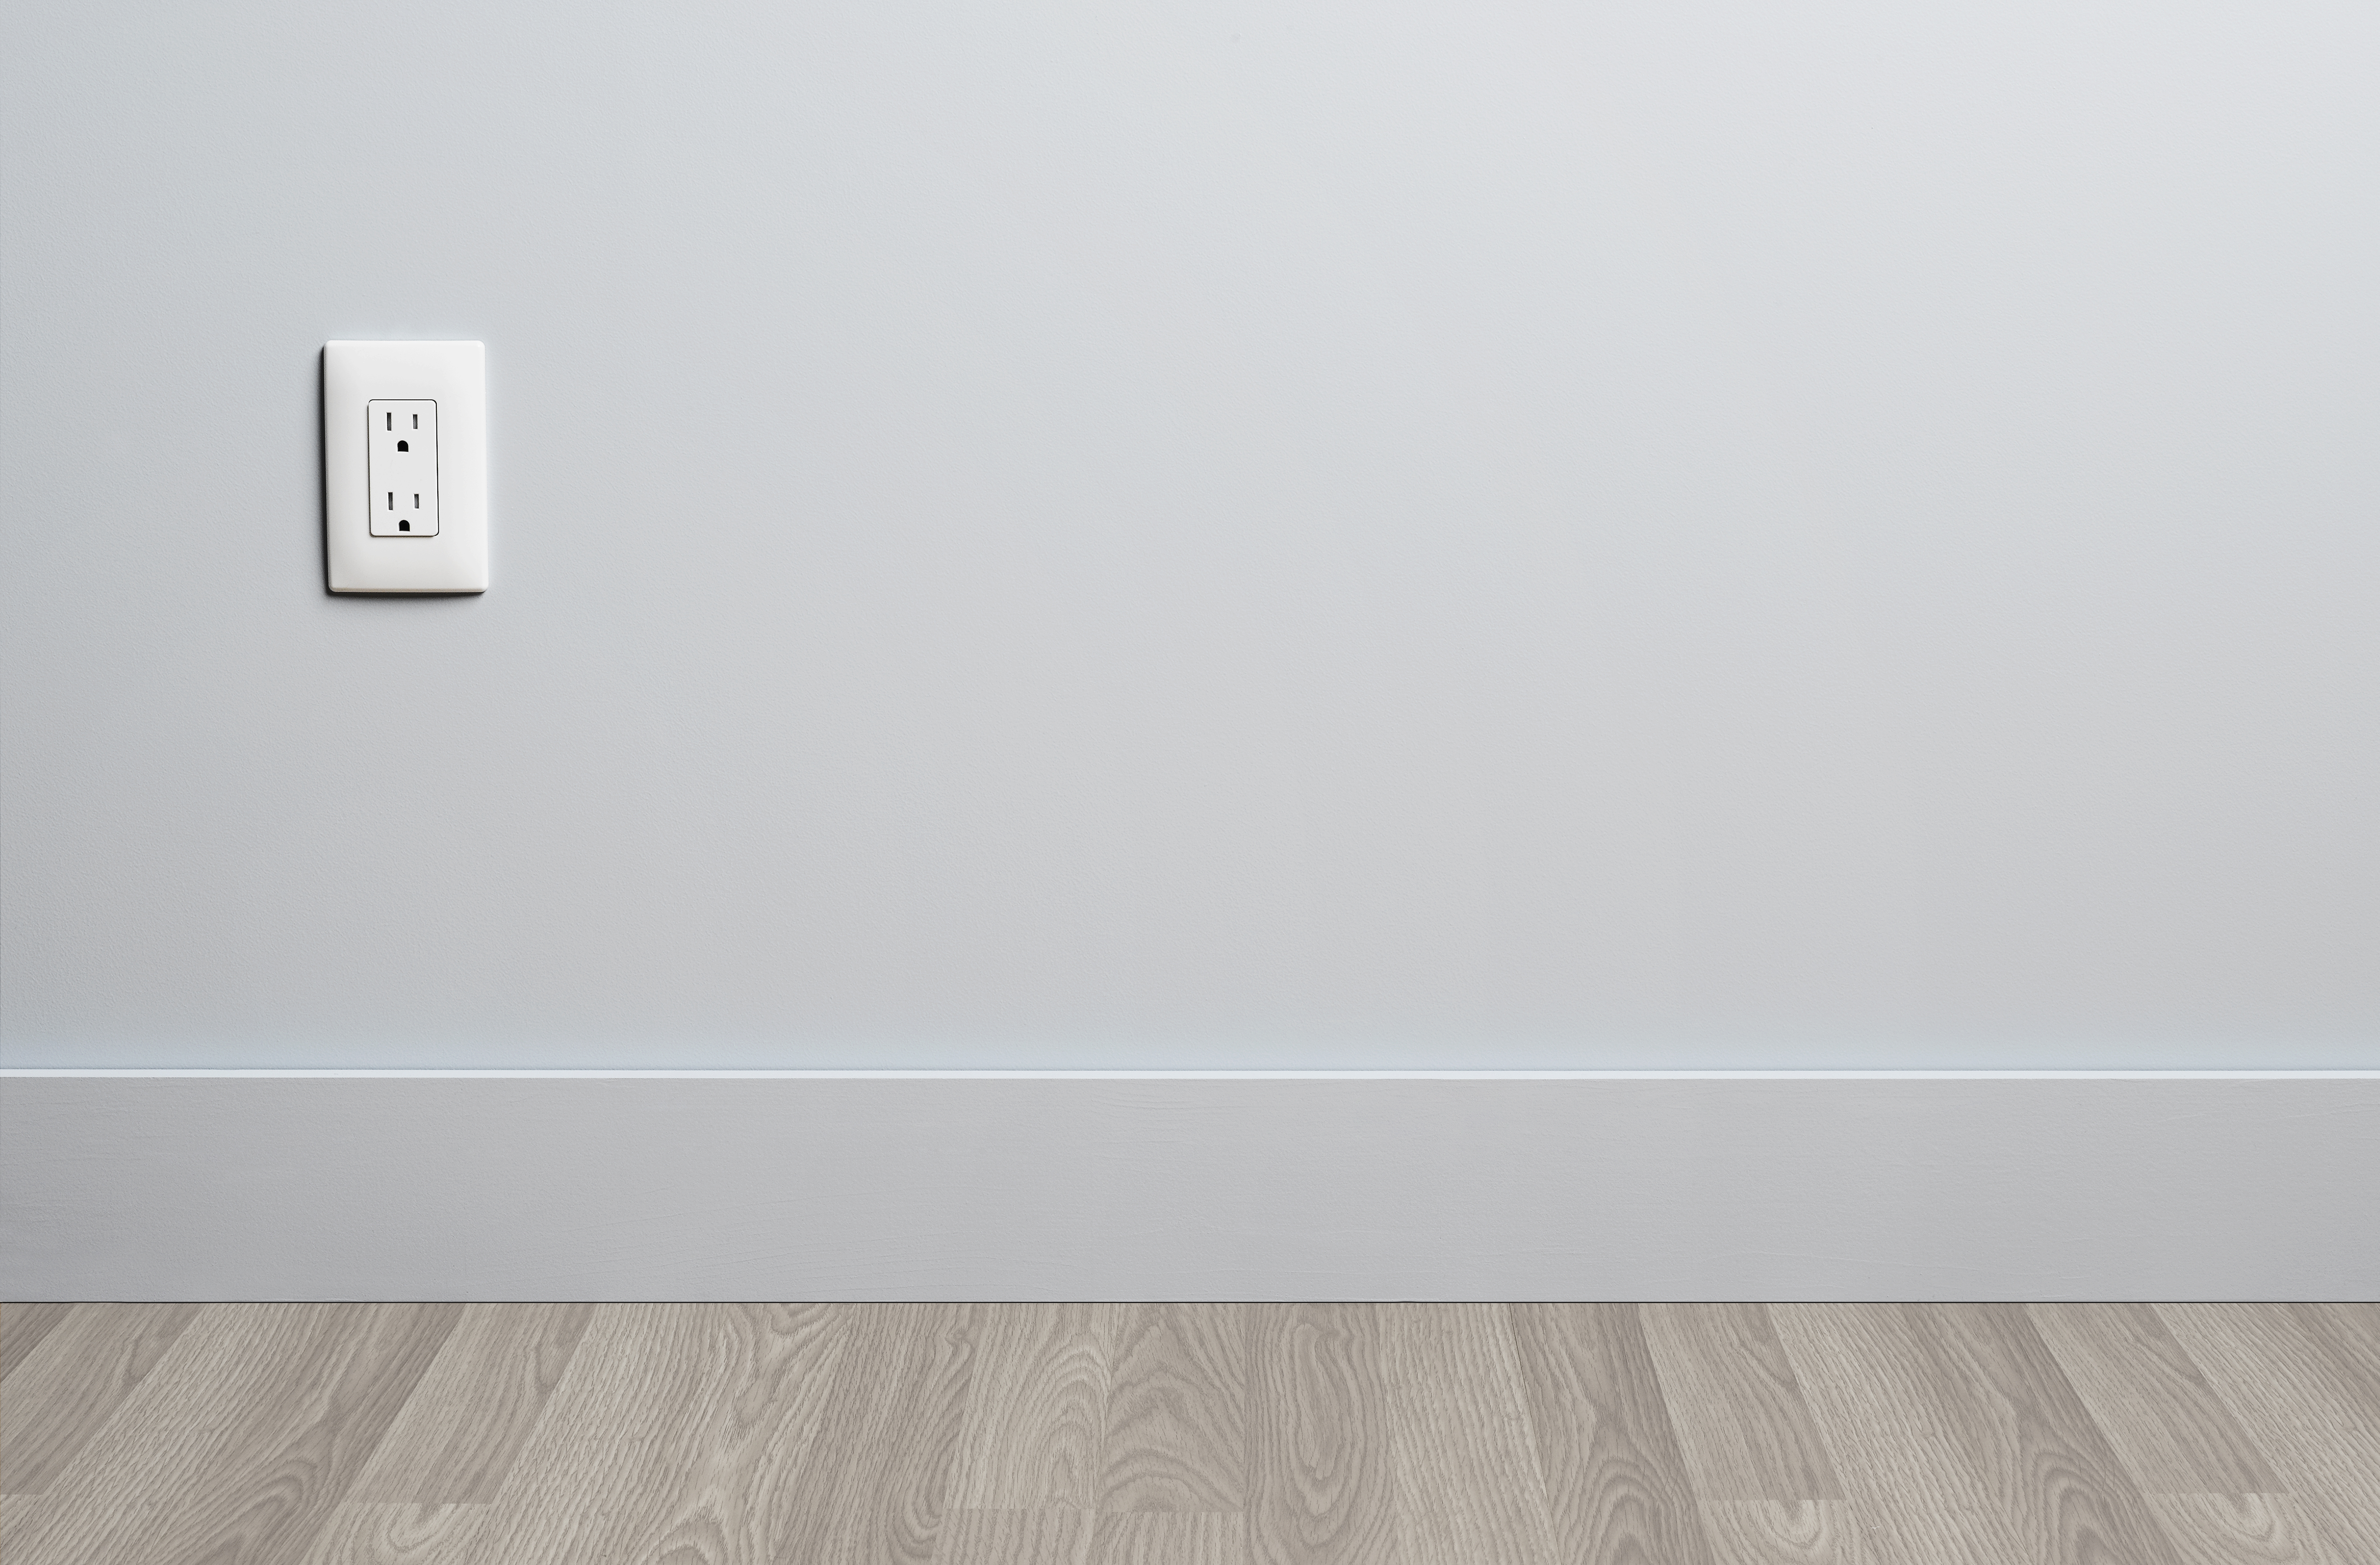 How to Cap Off an Electrical Outlet | Hunker